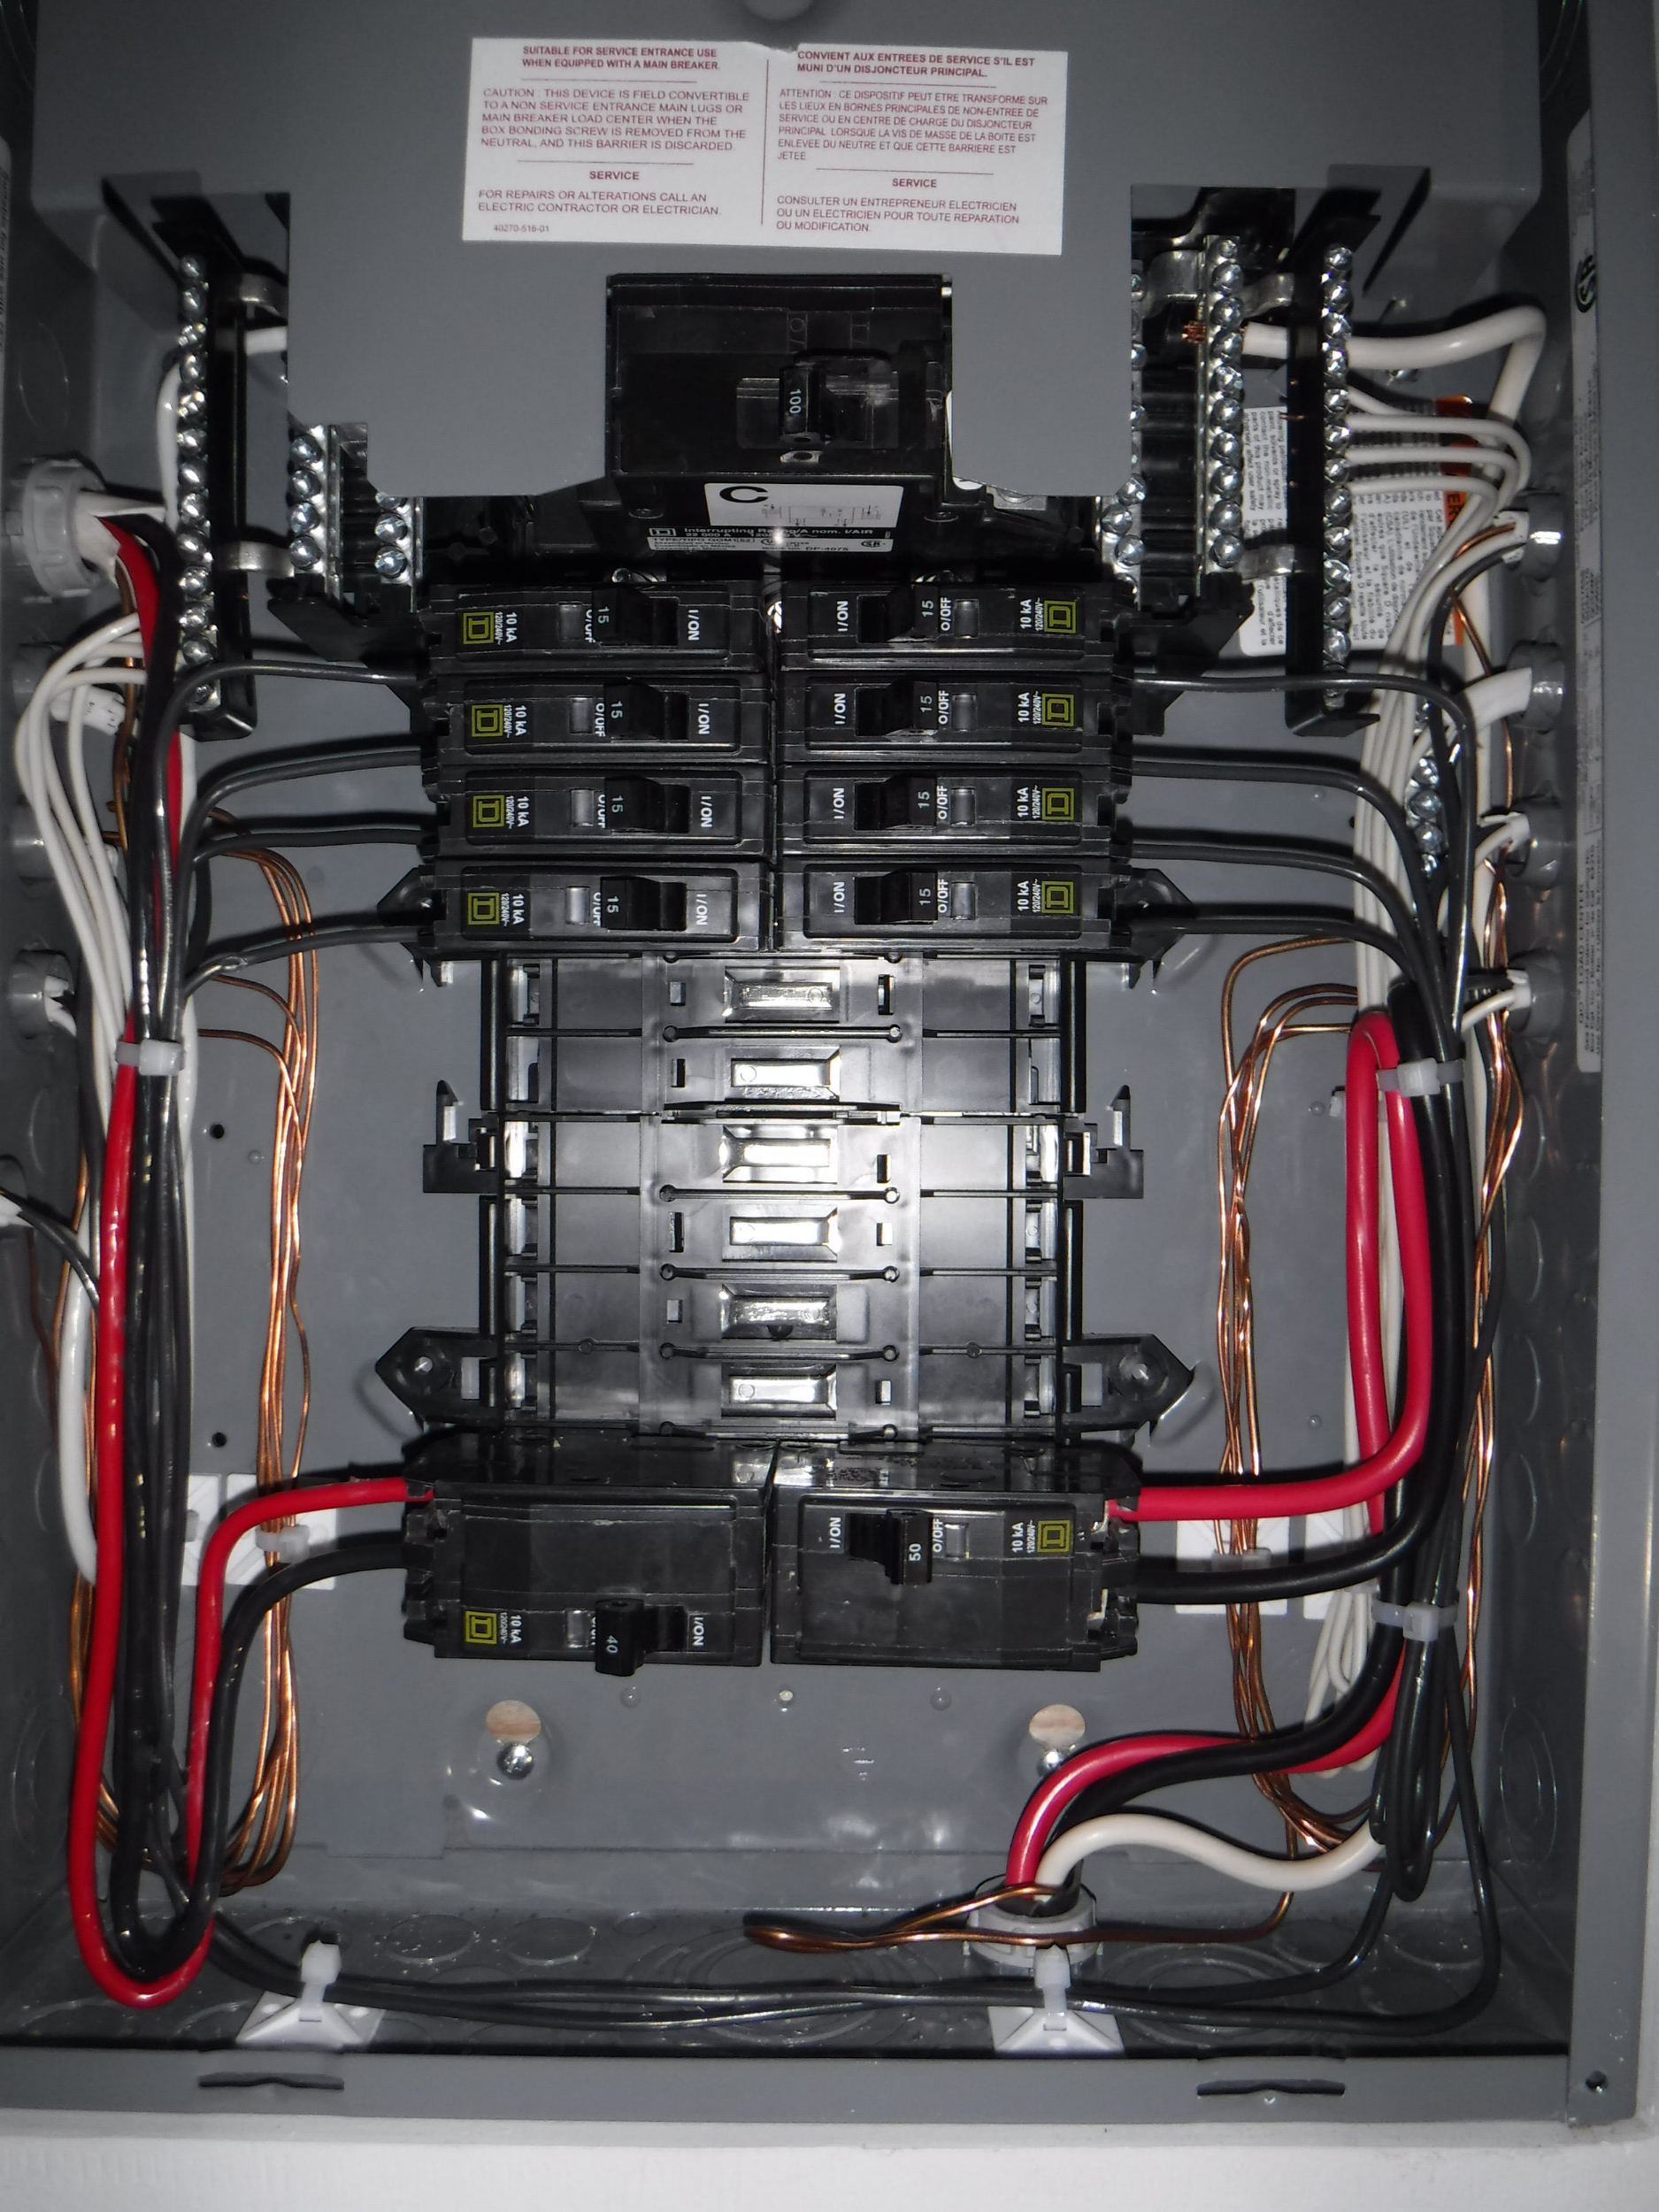 panel completion (new).jpg